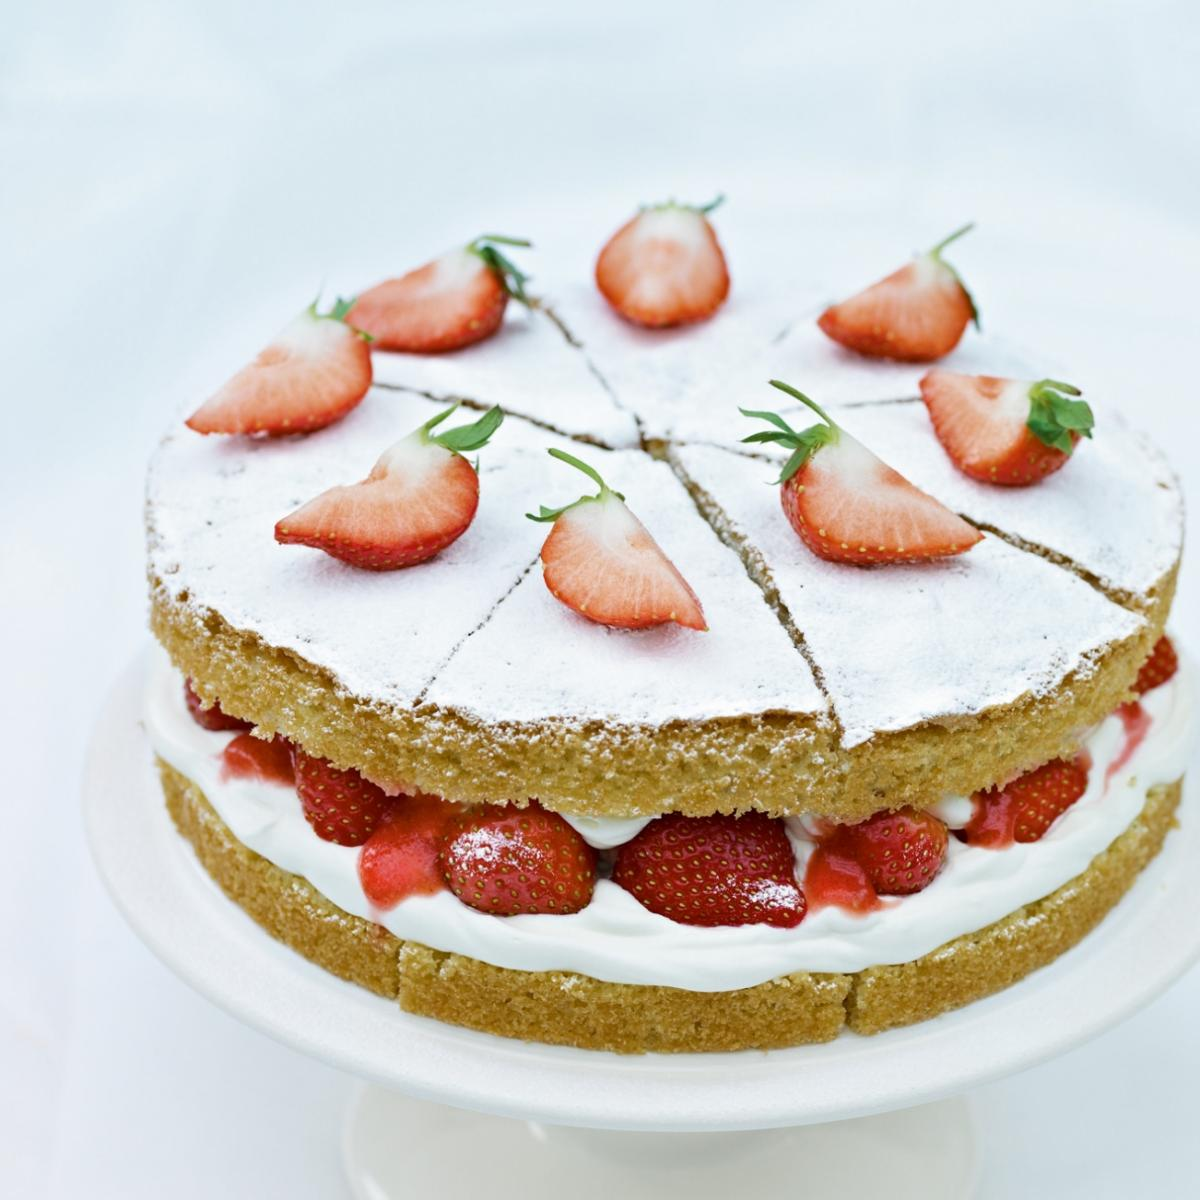 A picture of Delia's Strawberries and Cream Sponge Cake recipe